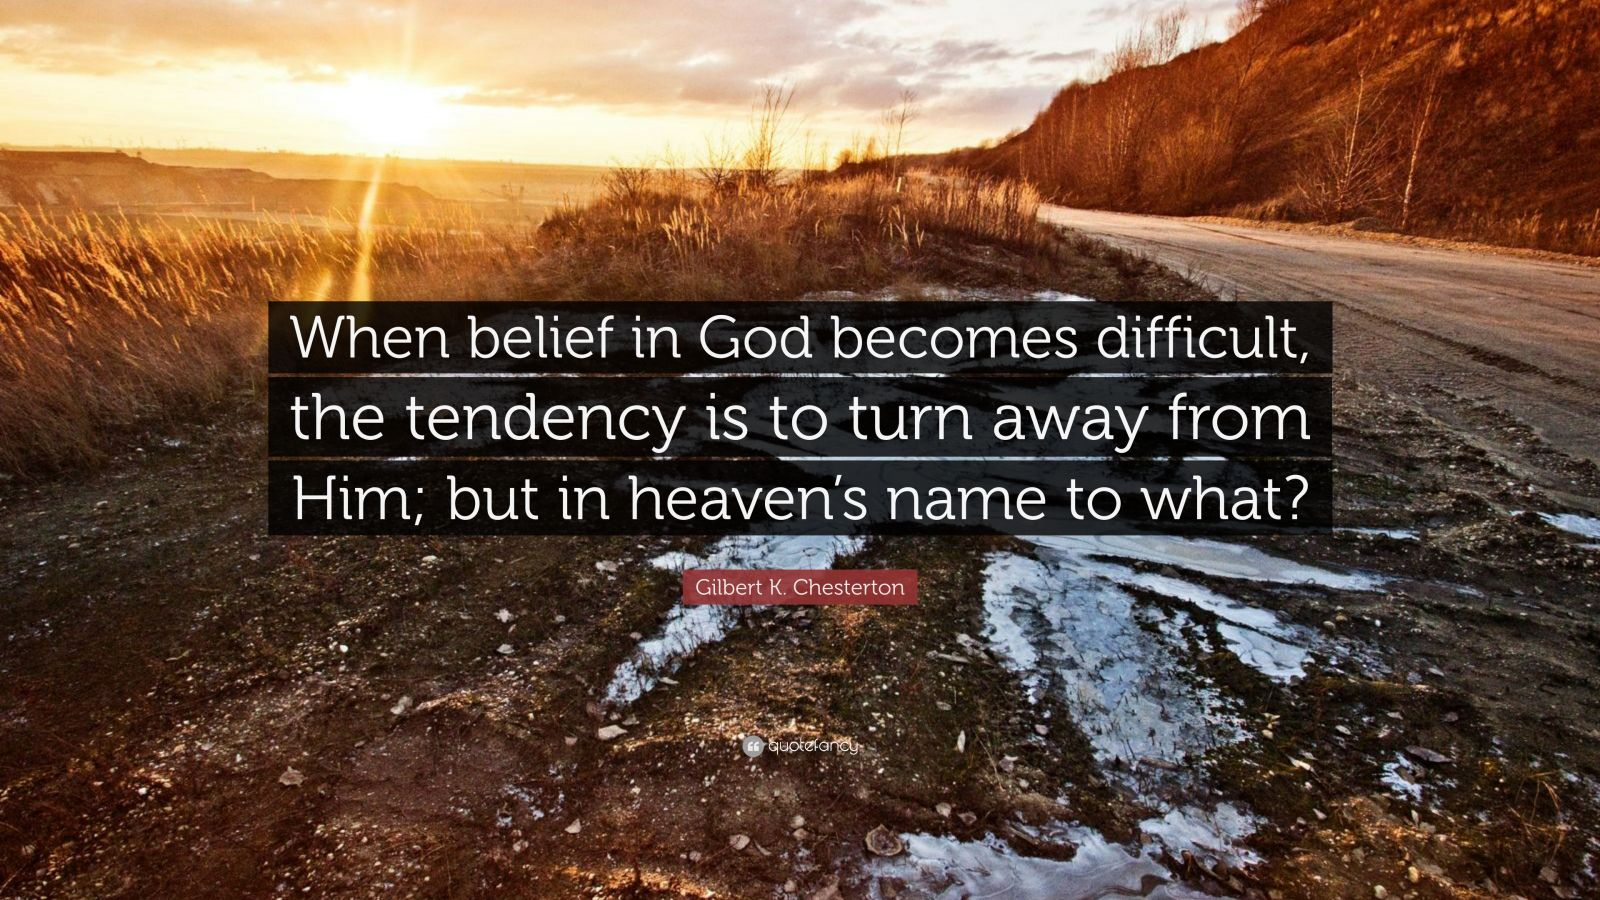 """Gilbert K. Chesterton Quote: """"When belief in God becomes difficult, the tendency is to turn away from Him; but in heaven's name to what?"""""""